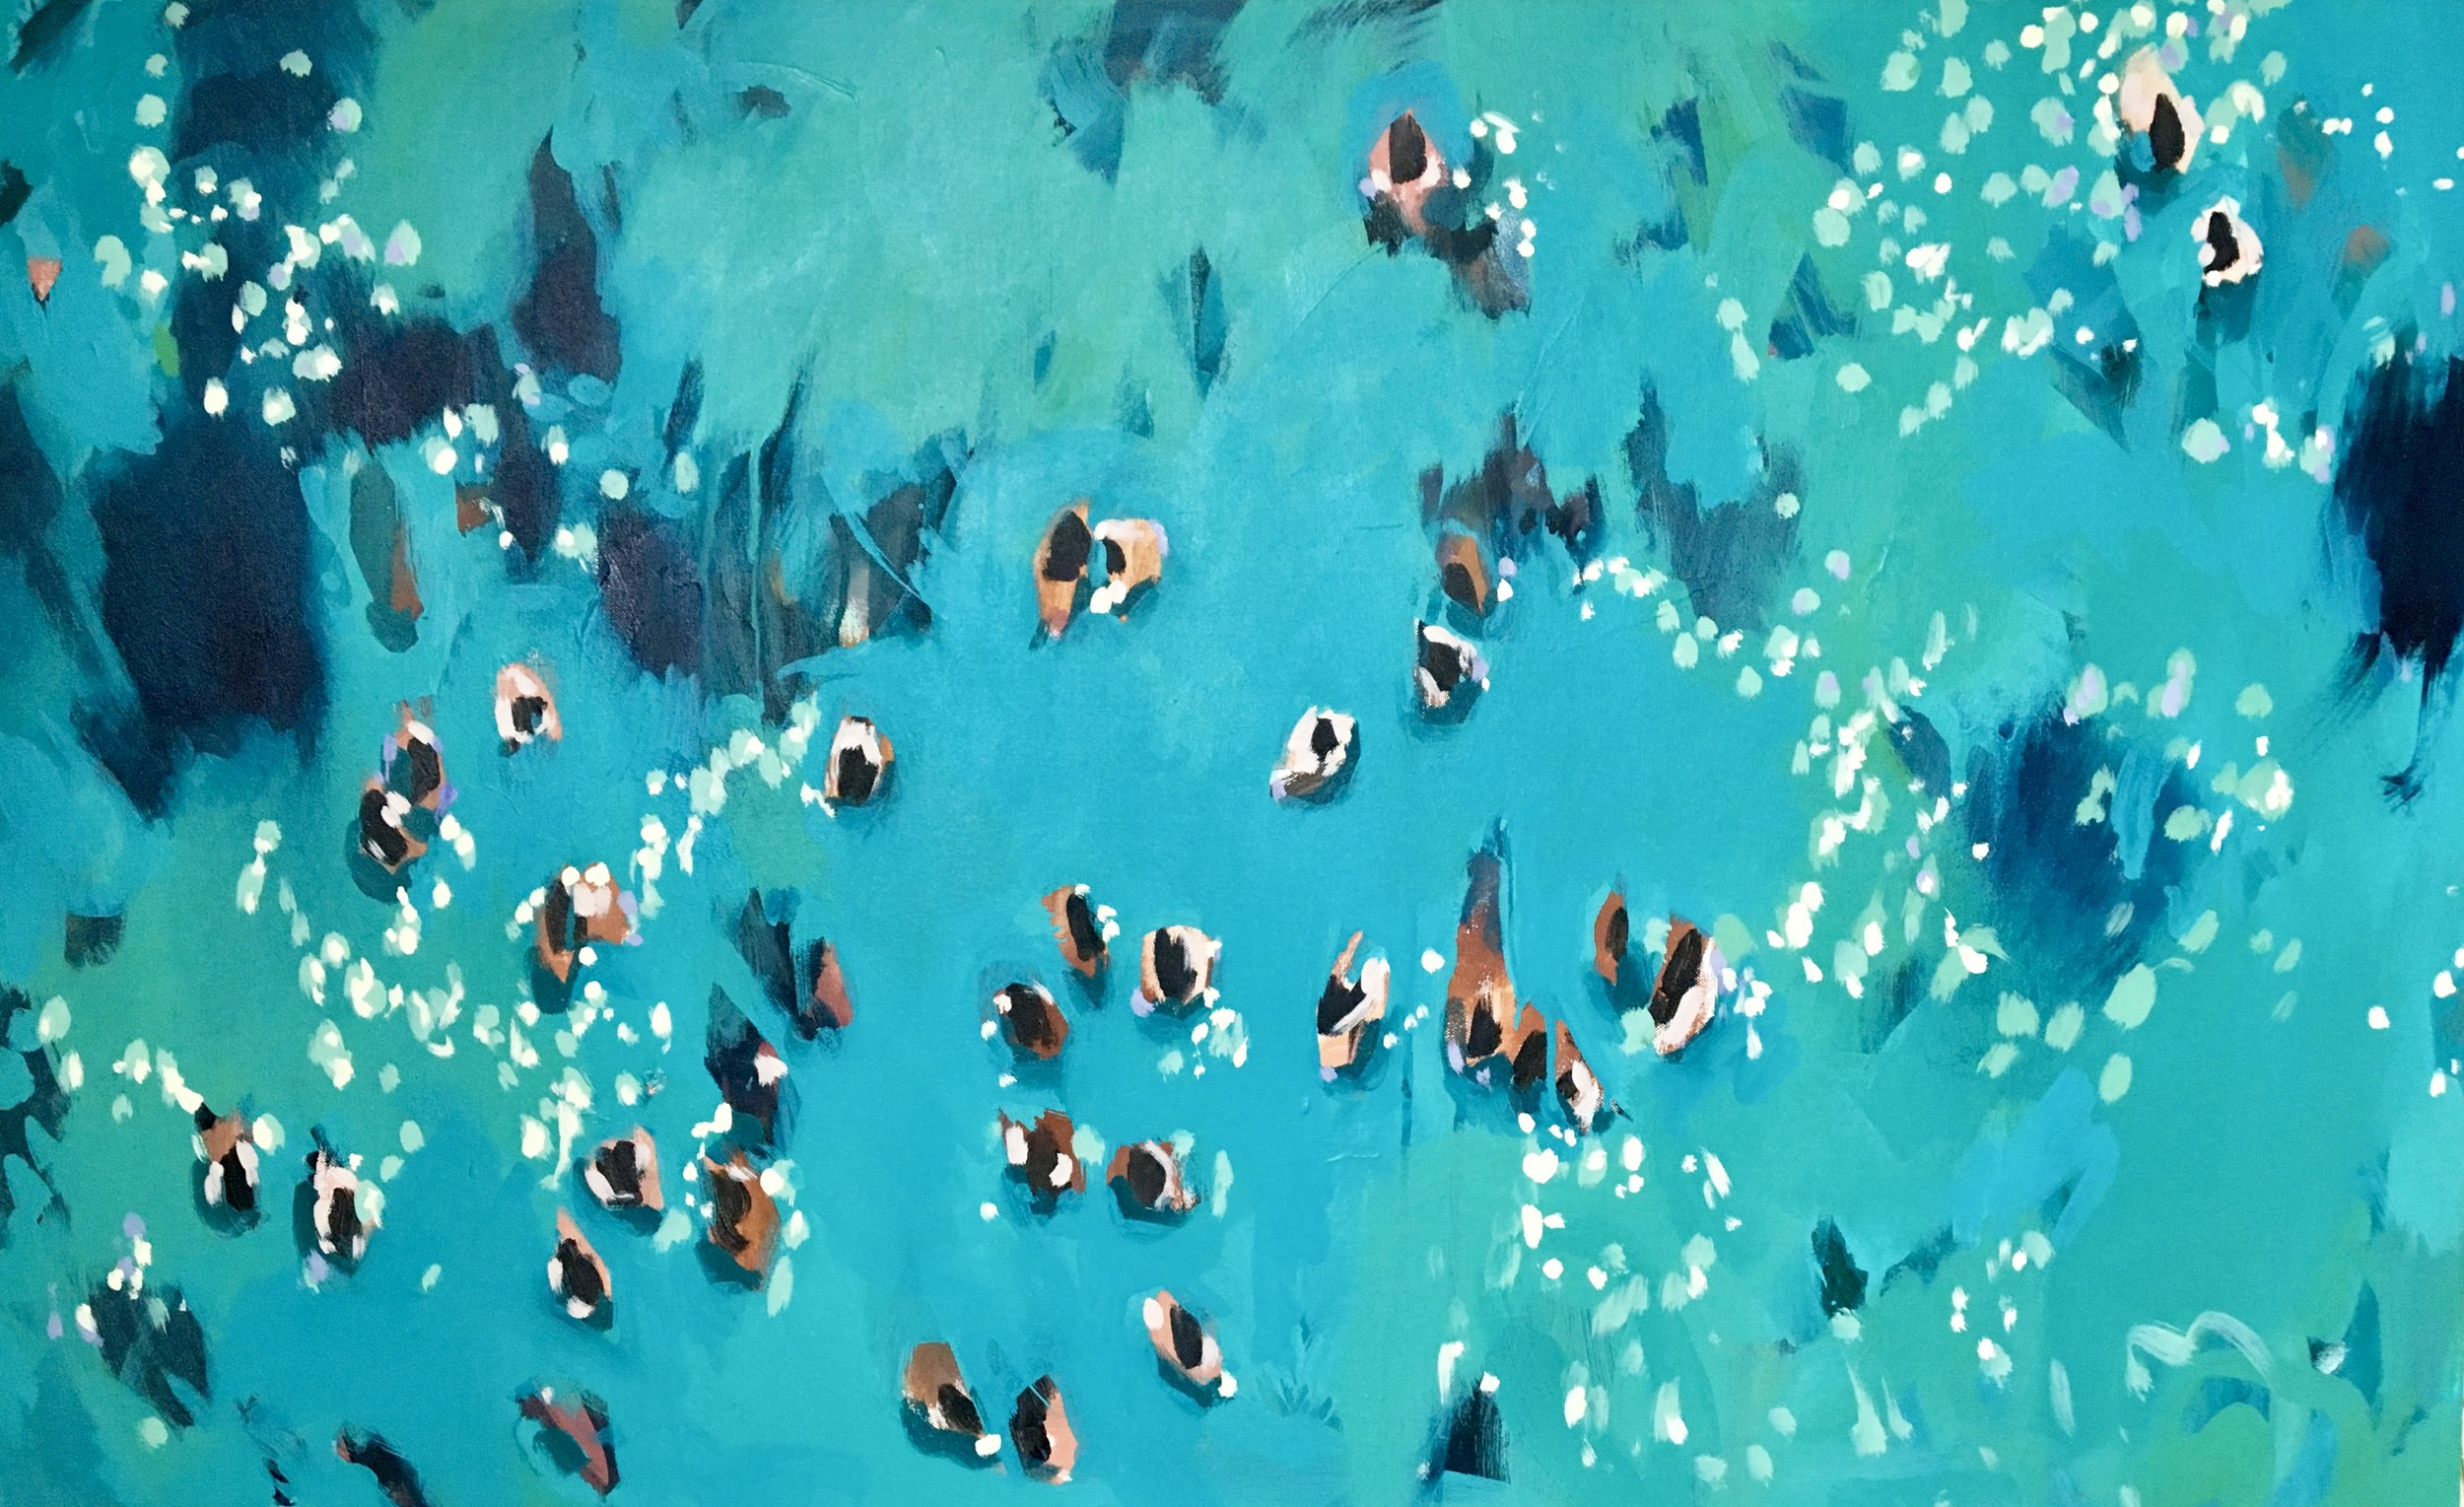 Nina Brooke Blue Swimmers, 2018 70 x 113 cm acrylic on canvas £ SOLD